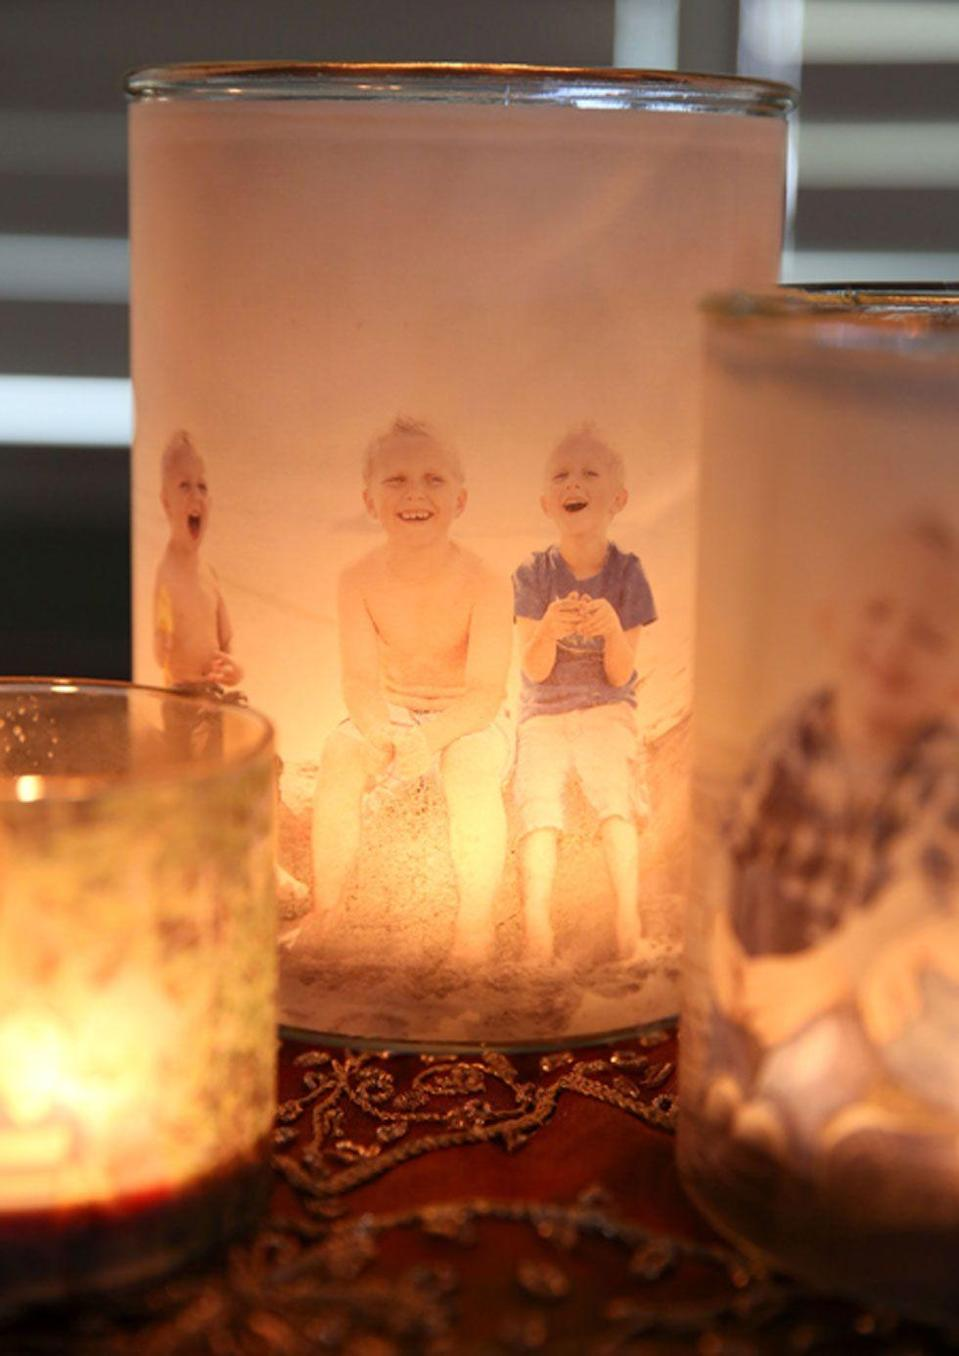 """<p>Surprise mom with these personalized votives that elegantly show off family photos. </p><p><strong>Get the tutorial at <a href=""""http://ourbestbites.com/2013/11/glowing-photo-luminaries/"""" rel=""""nofollow noopener"""" target=""""_blank"""" data-ylk=""""slk:Our Best Bites"""" class=""""link rapid-noclick-resp"""">Our Best Bites</a>.</strong></p>"""